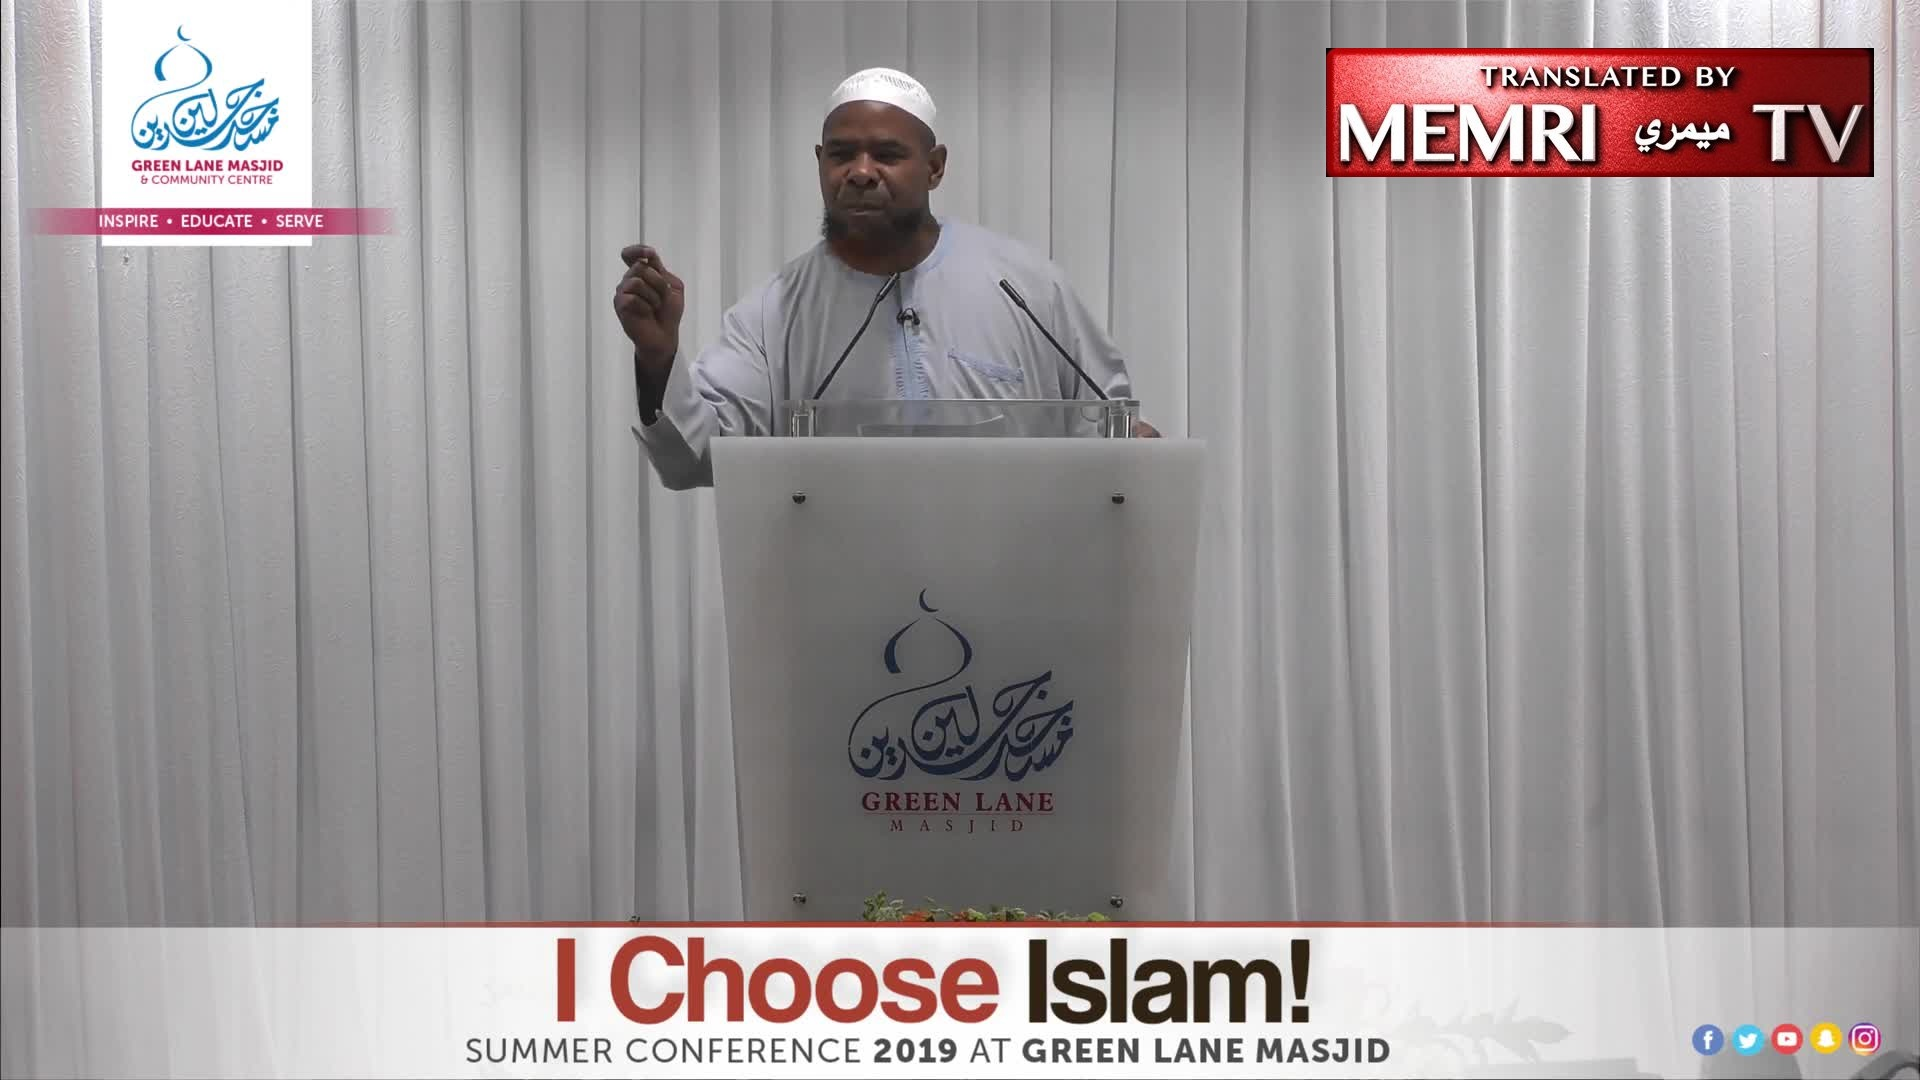 U.K. Cleric Abu Usamah At-Thahabi: I Support Chopping Off Hands of Thieves, But Only in the Muslim World, Not Here